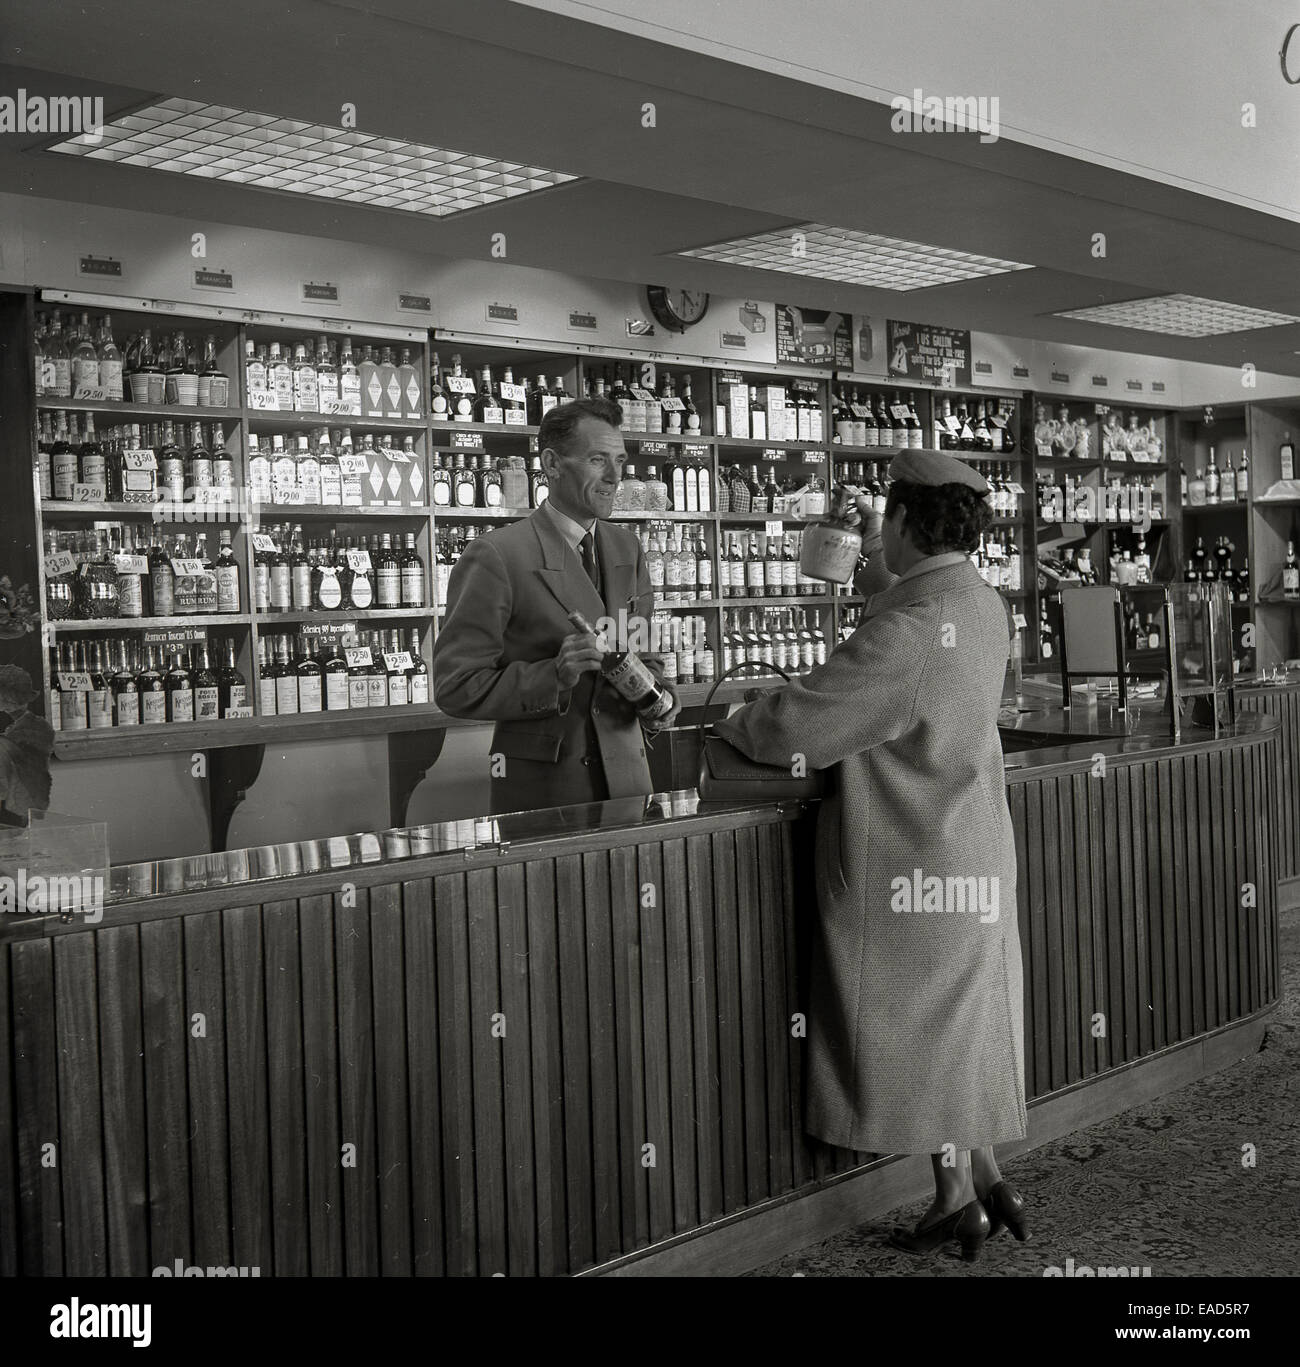 1950s, historical picture of a lady passenger being served at an airport duty free kiosk or shop, Dublin airport, - Stock Image